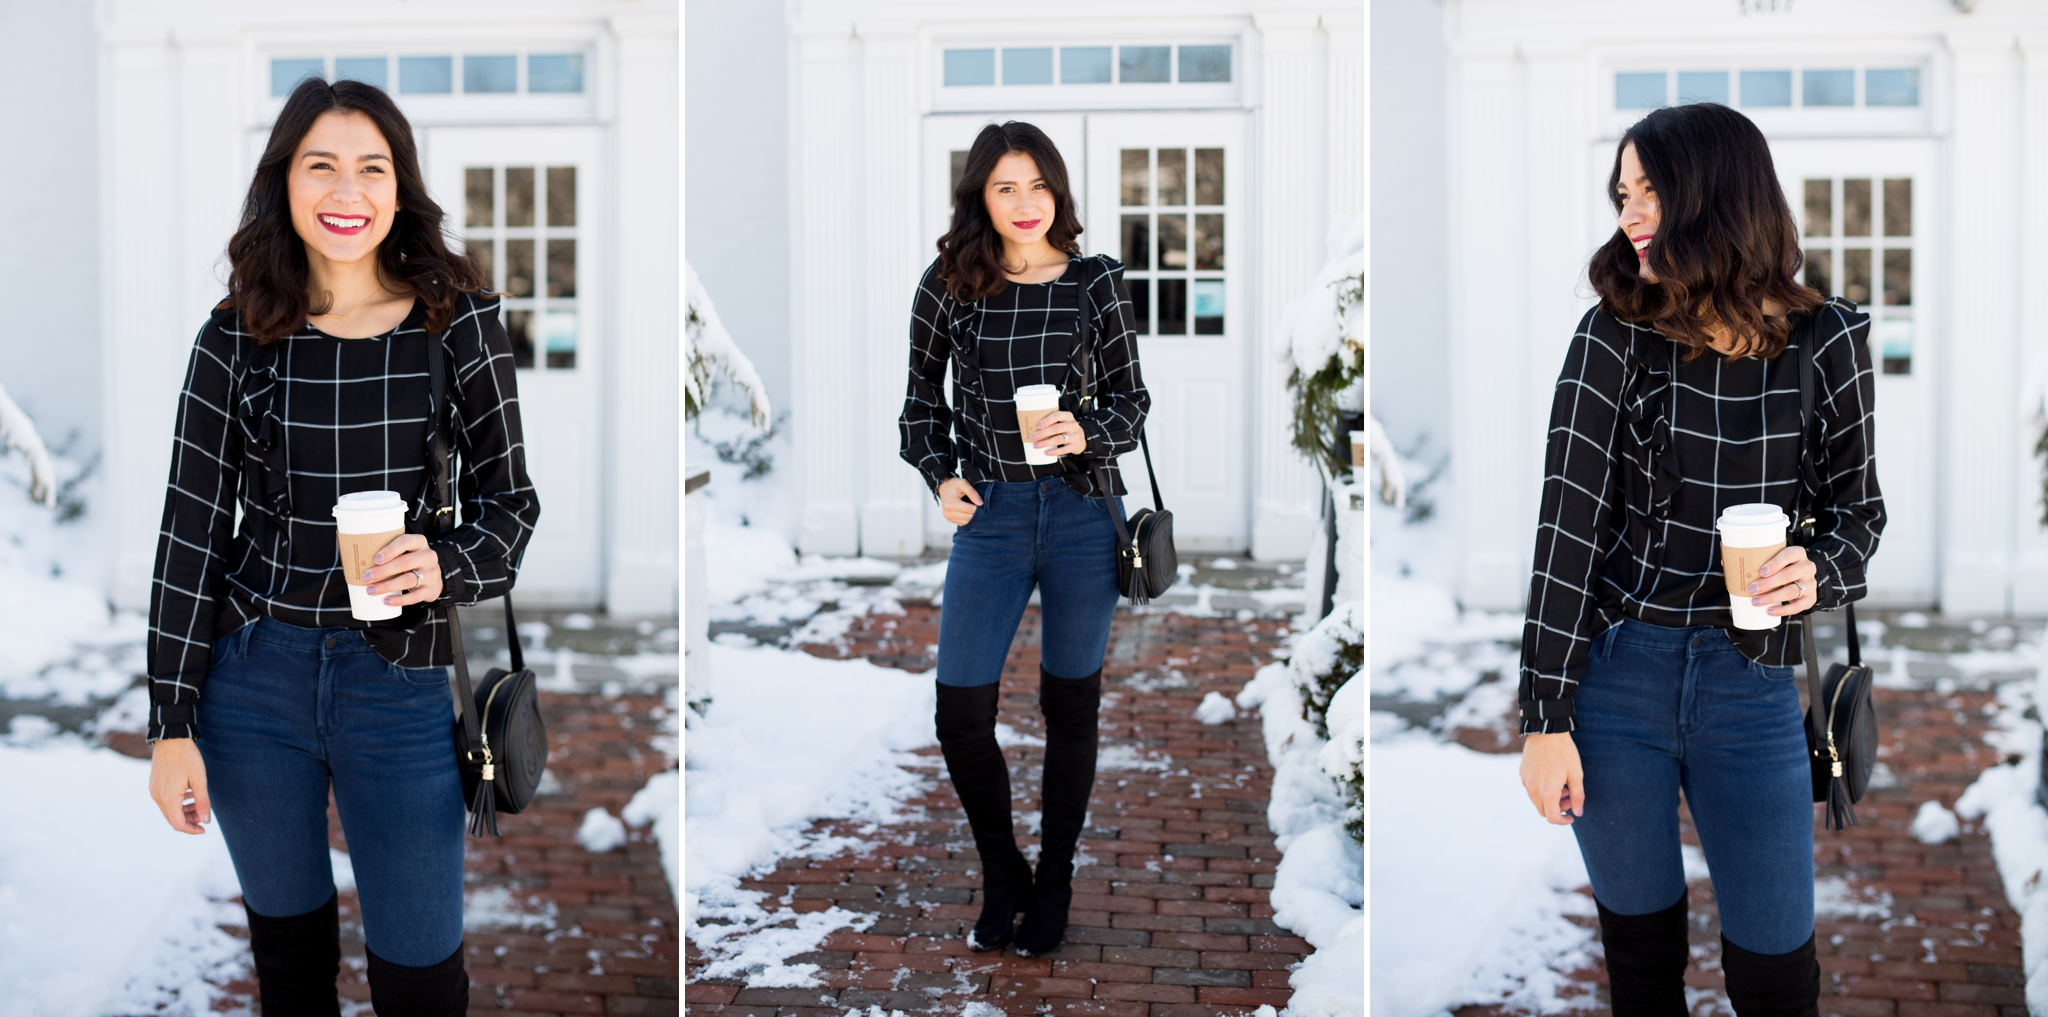 Snowy photos, winter wonderland, blog photography, pictures in the snow, plaid shirt, knee high boots